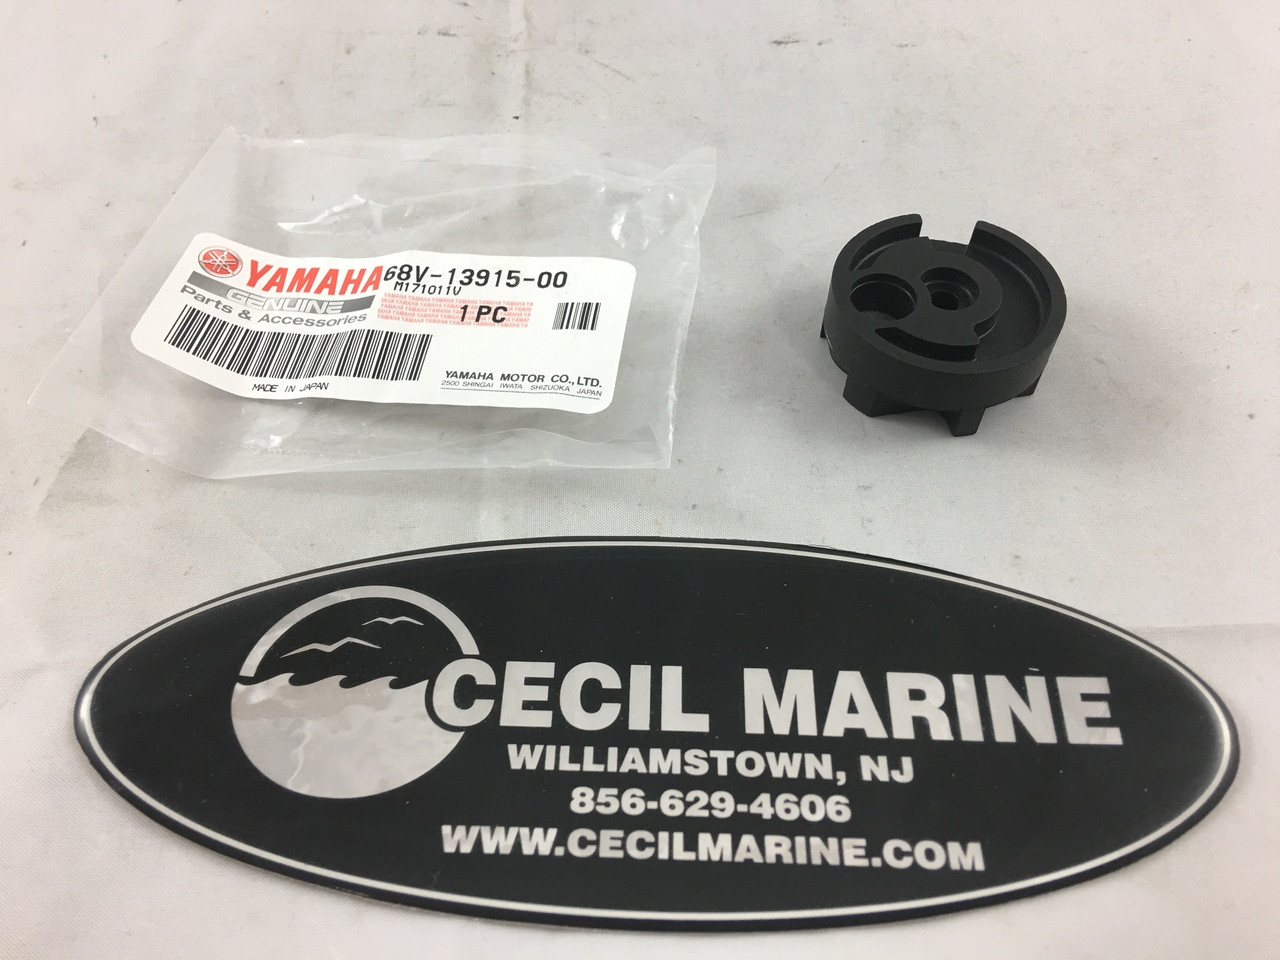 hight resolution of  39 45 yamaha fuel filter 68v 13915 00 in stock ready to ship cecil marine